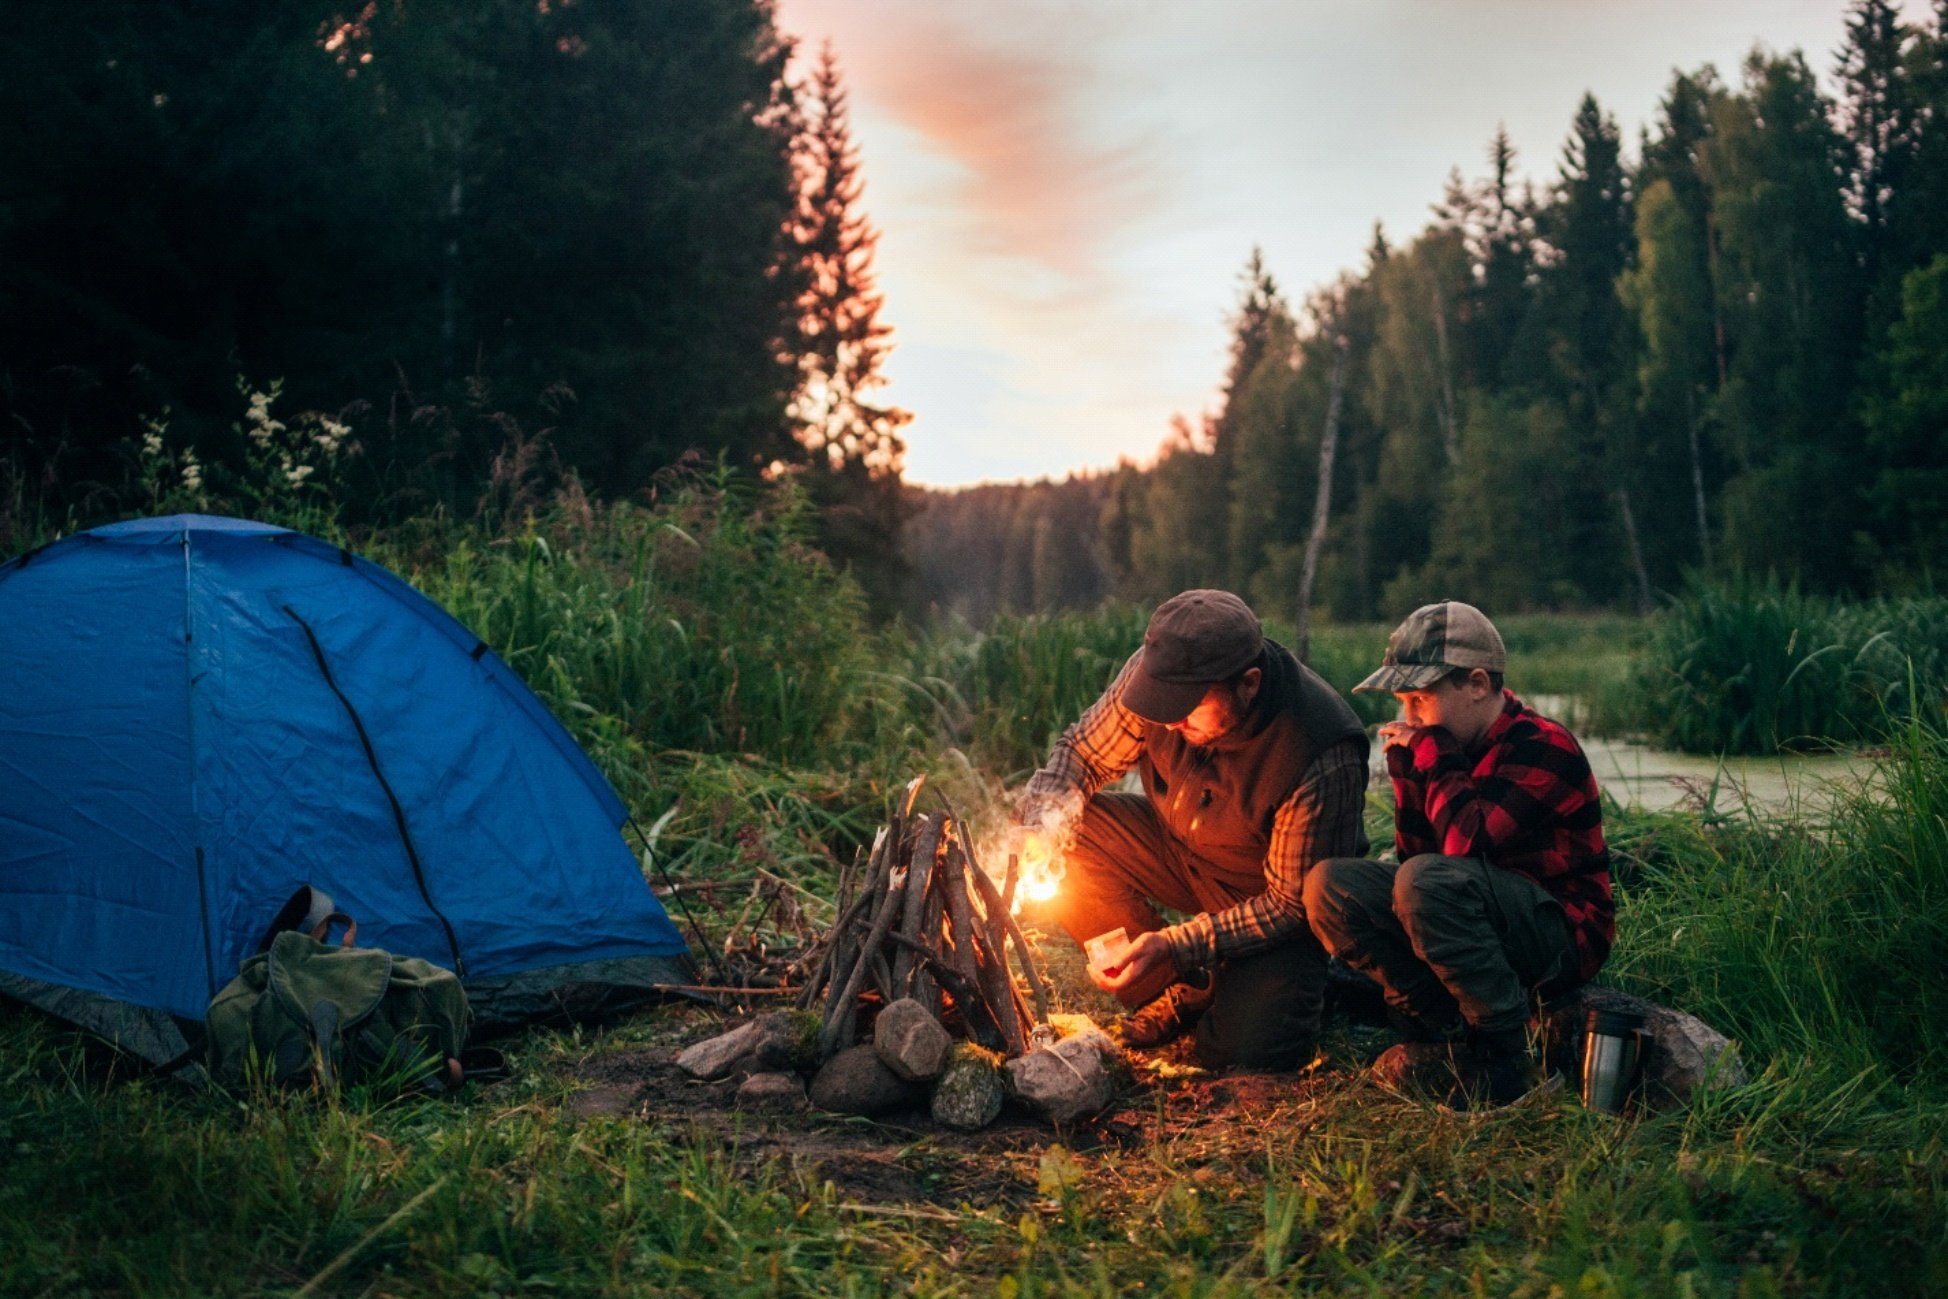 Camping as a family